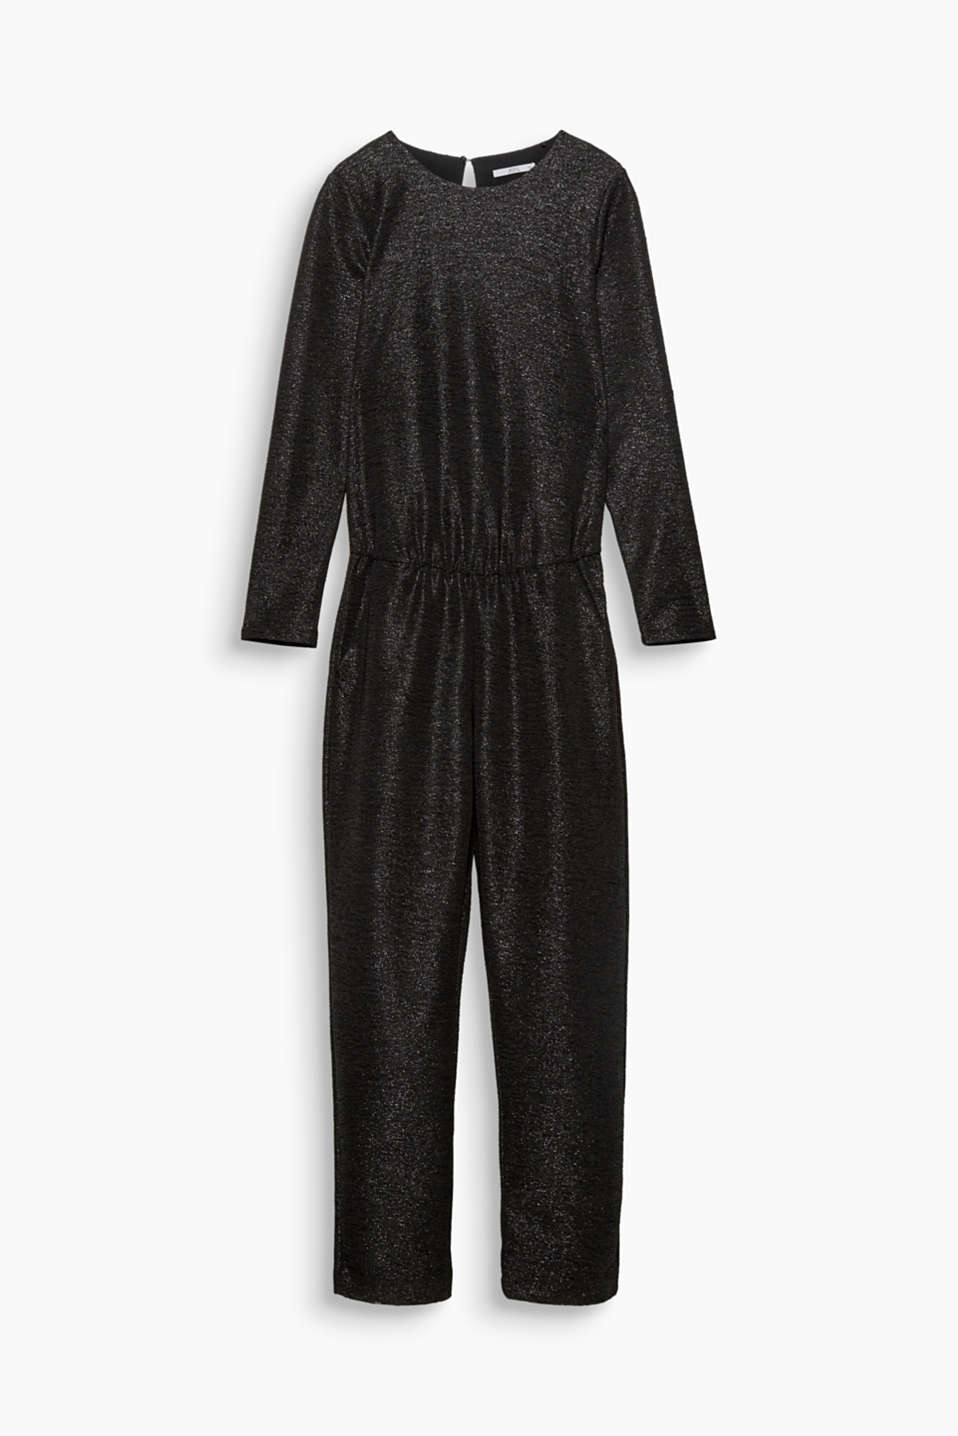 This jumpsuit is perfect for creating festive looks with its sparkling shimmer and low back neckline.